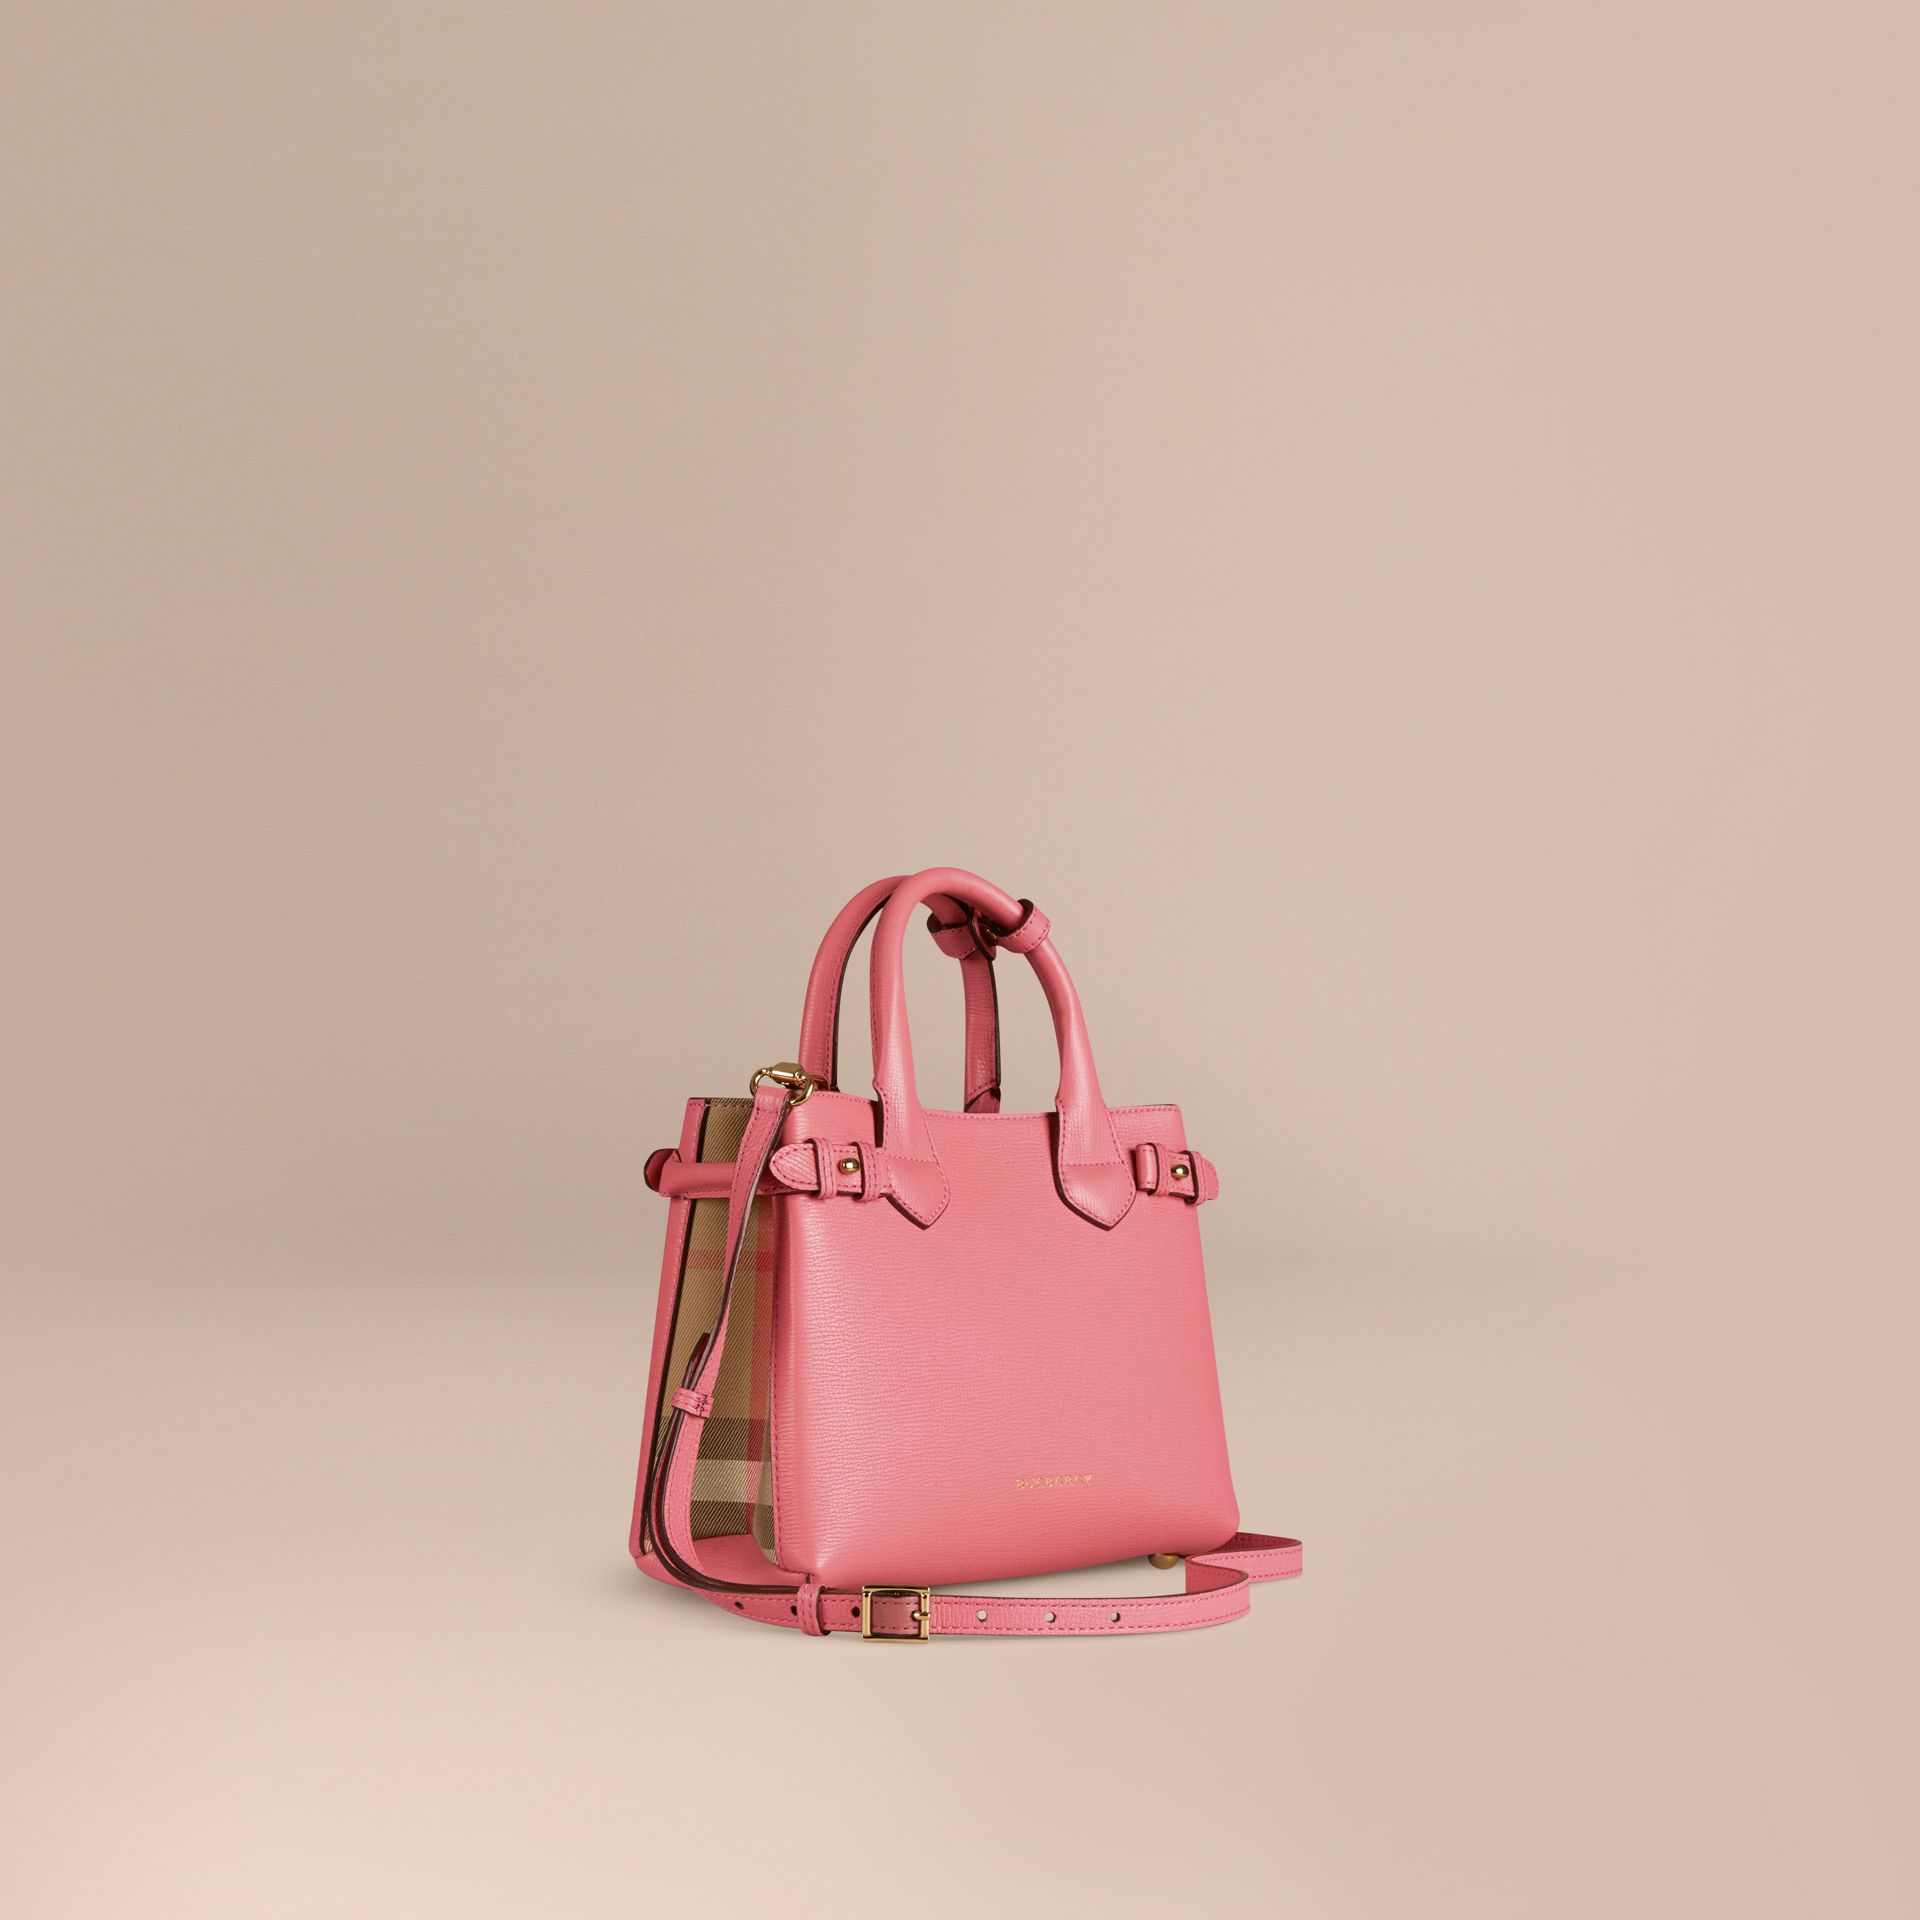 Rose mauve Petit sac The Banner en cuir et coton House check Rose Mauve - photo de la galerie 1